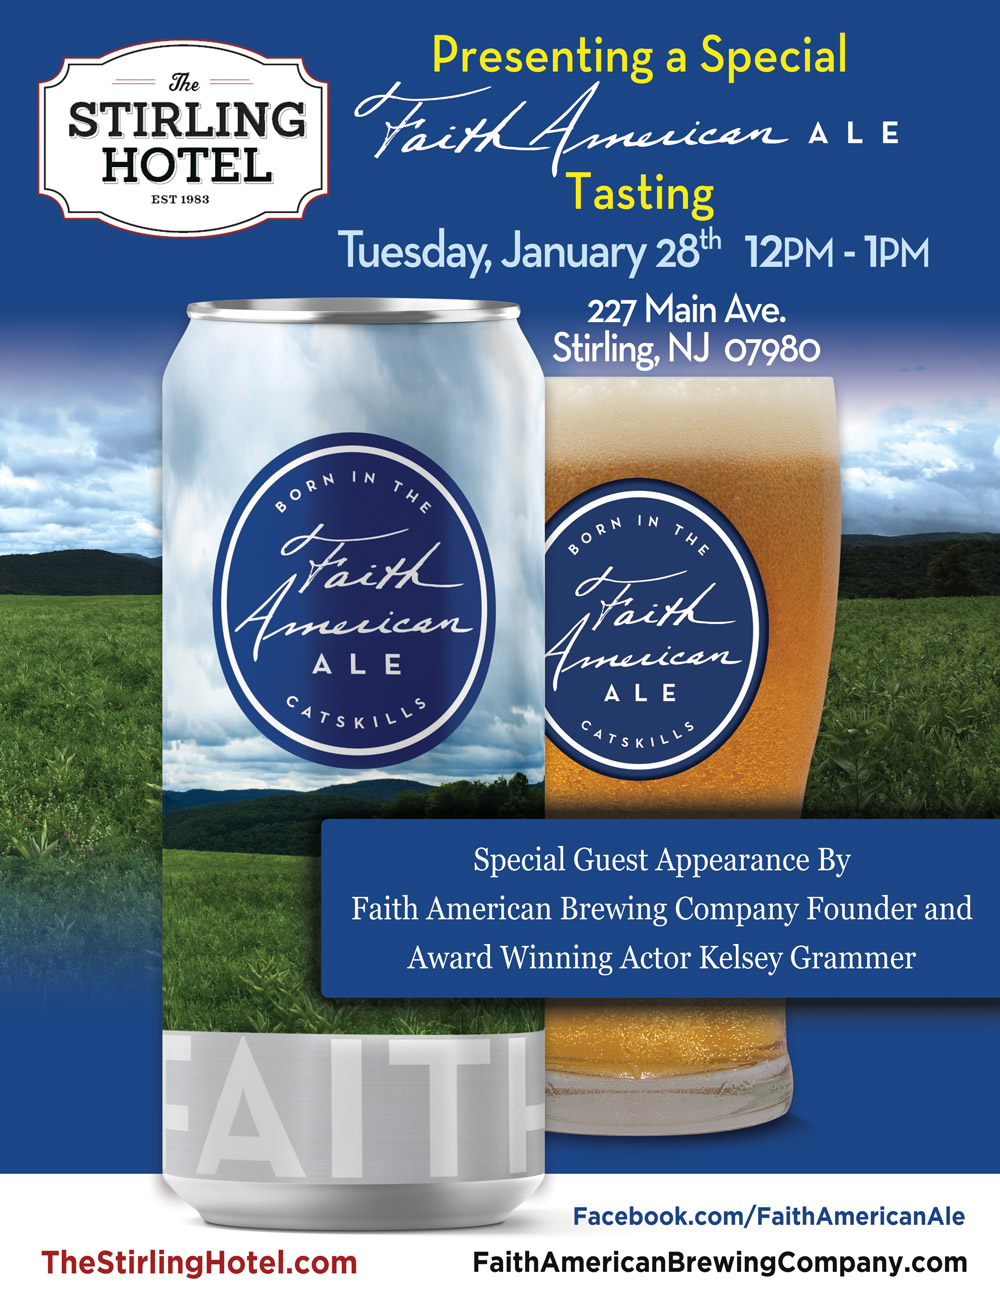 A Special Faith American Ale Tasting Event at The Stirling Hotel